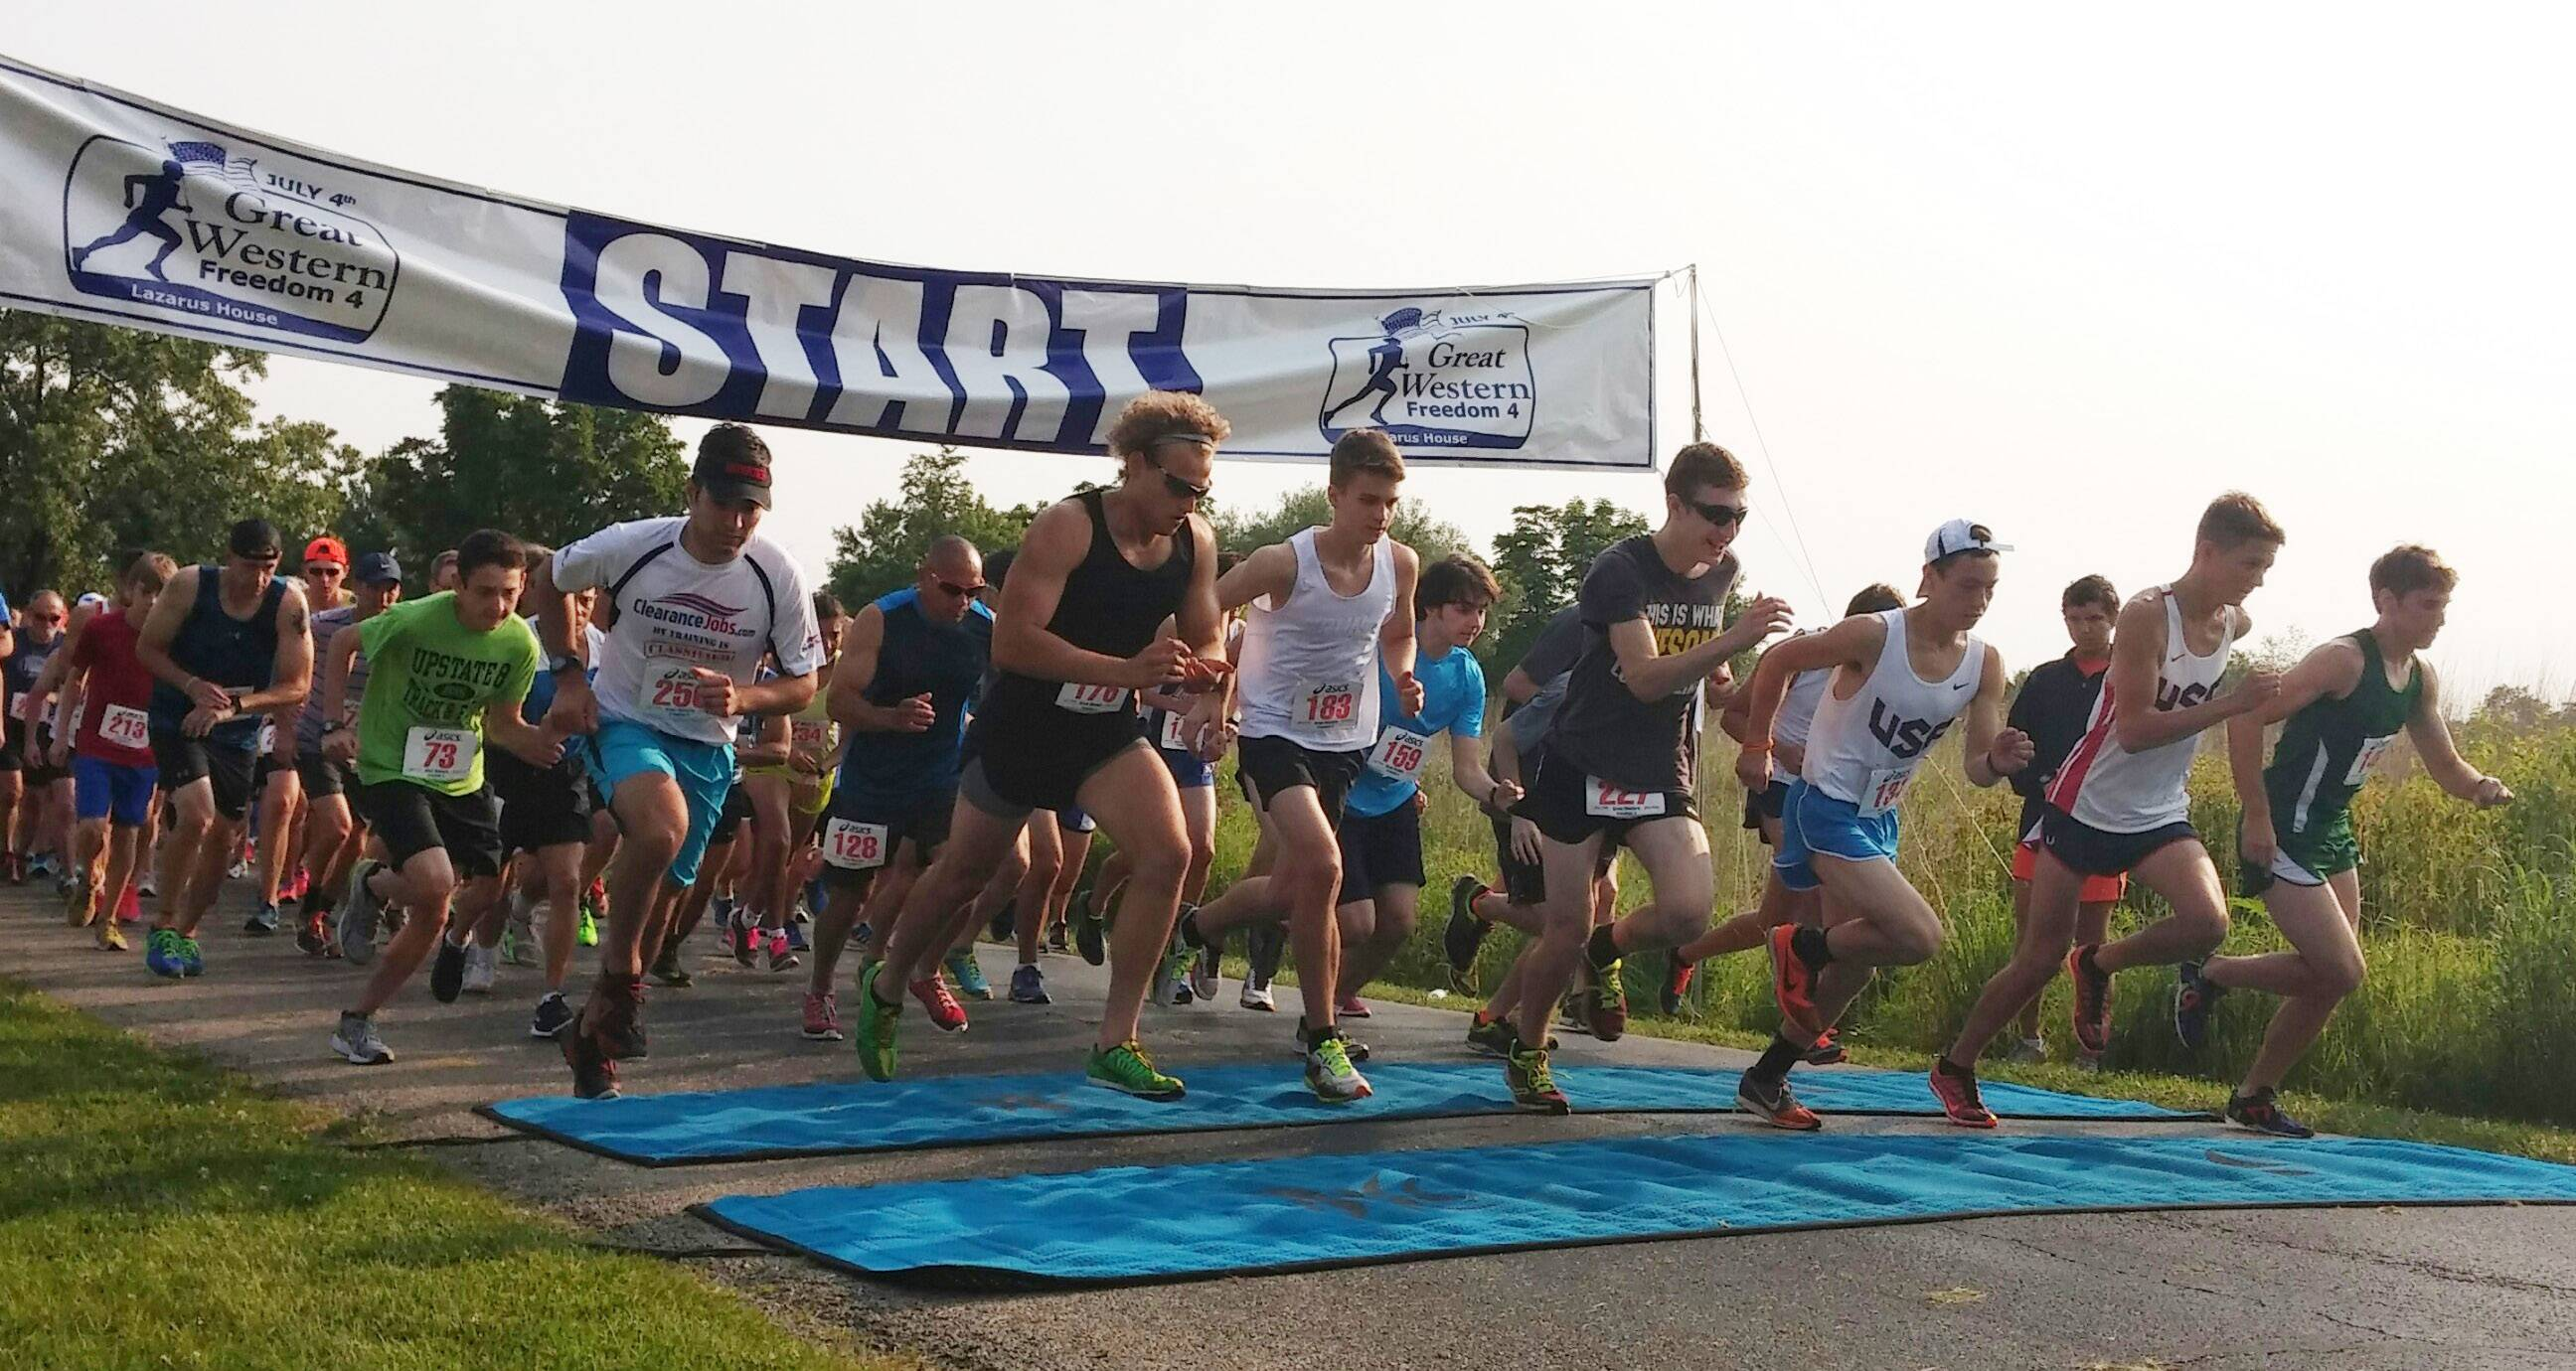 Runners start in the Freedom 4 run Saturday morning at the LeRoy Oakes Forest Preserve in St. Charles. The event raises money for Lazarus House, a homeless shelter.